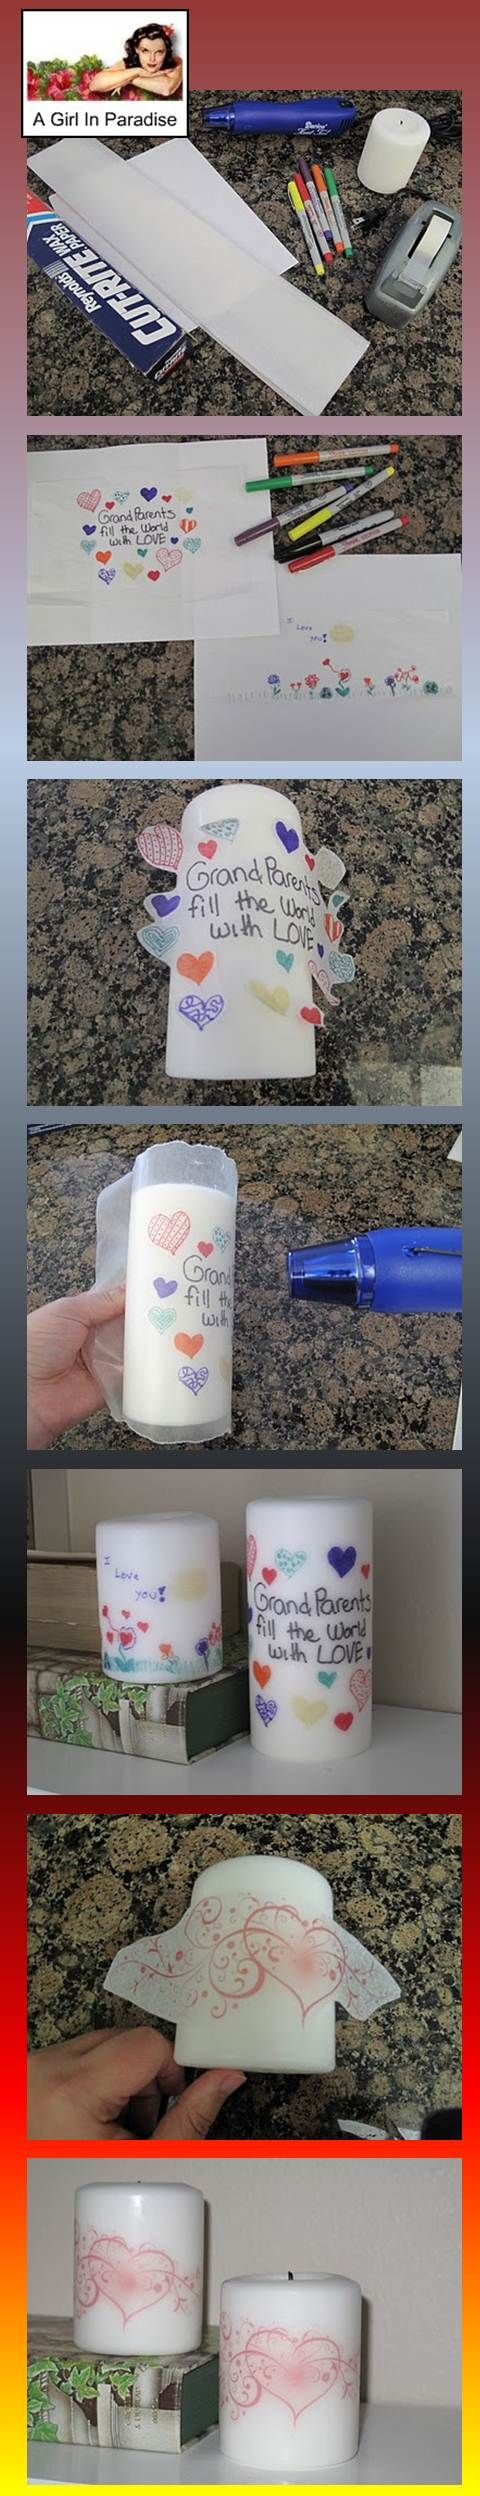 Personalize candles. A Girl in paradise You will need some regular paper, tissue paper, tape, sharpies or markers, a candle, wax paper, and a heat gun. In a second method she prints on Tissue paper fully taped to sheet of paper and put in  inkjet printer.  She uses a heat gun to transfer patterns. Great for kids art work for Grandma or a wedding candle.